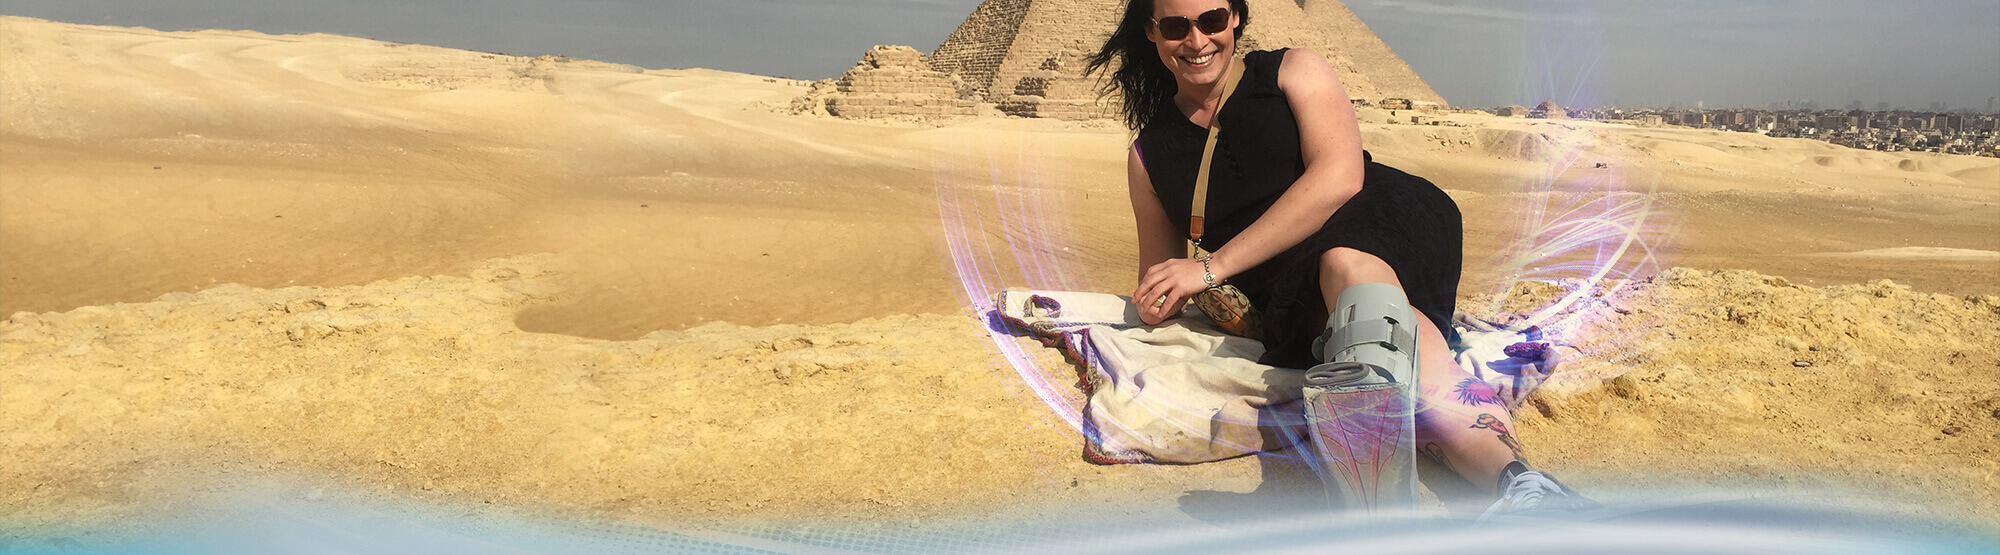 Woman next to pyramid